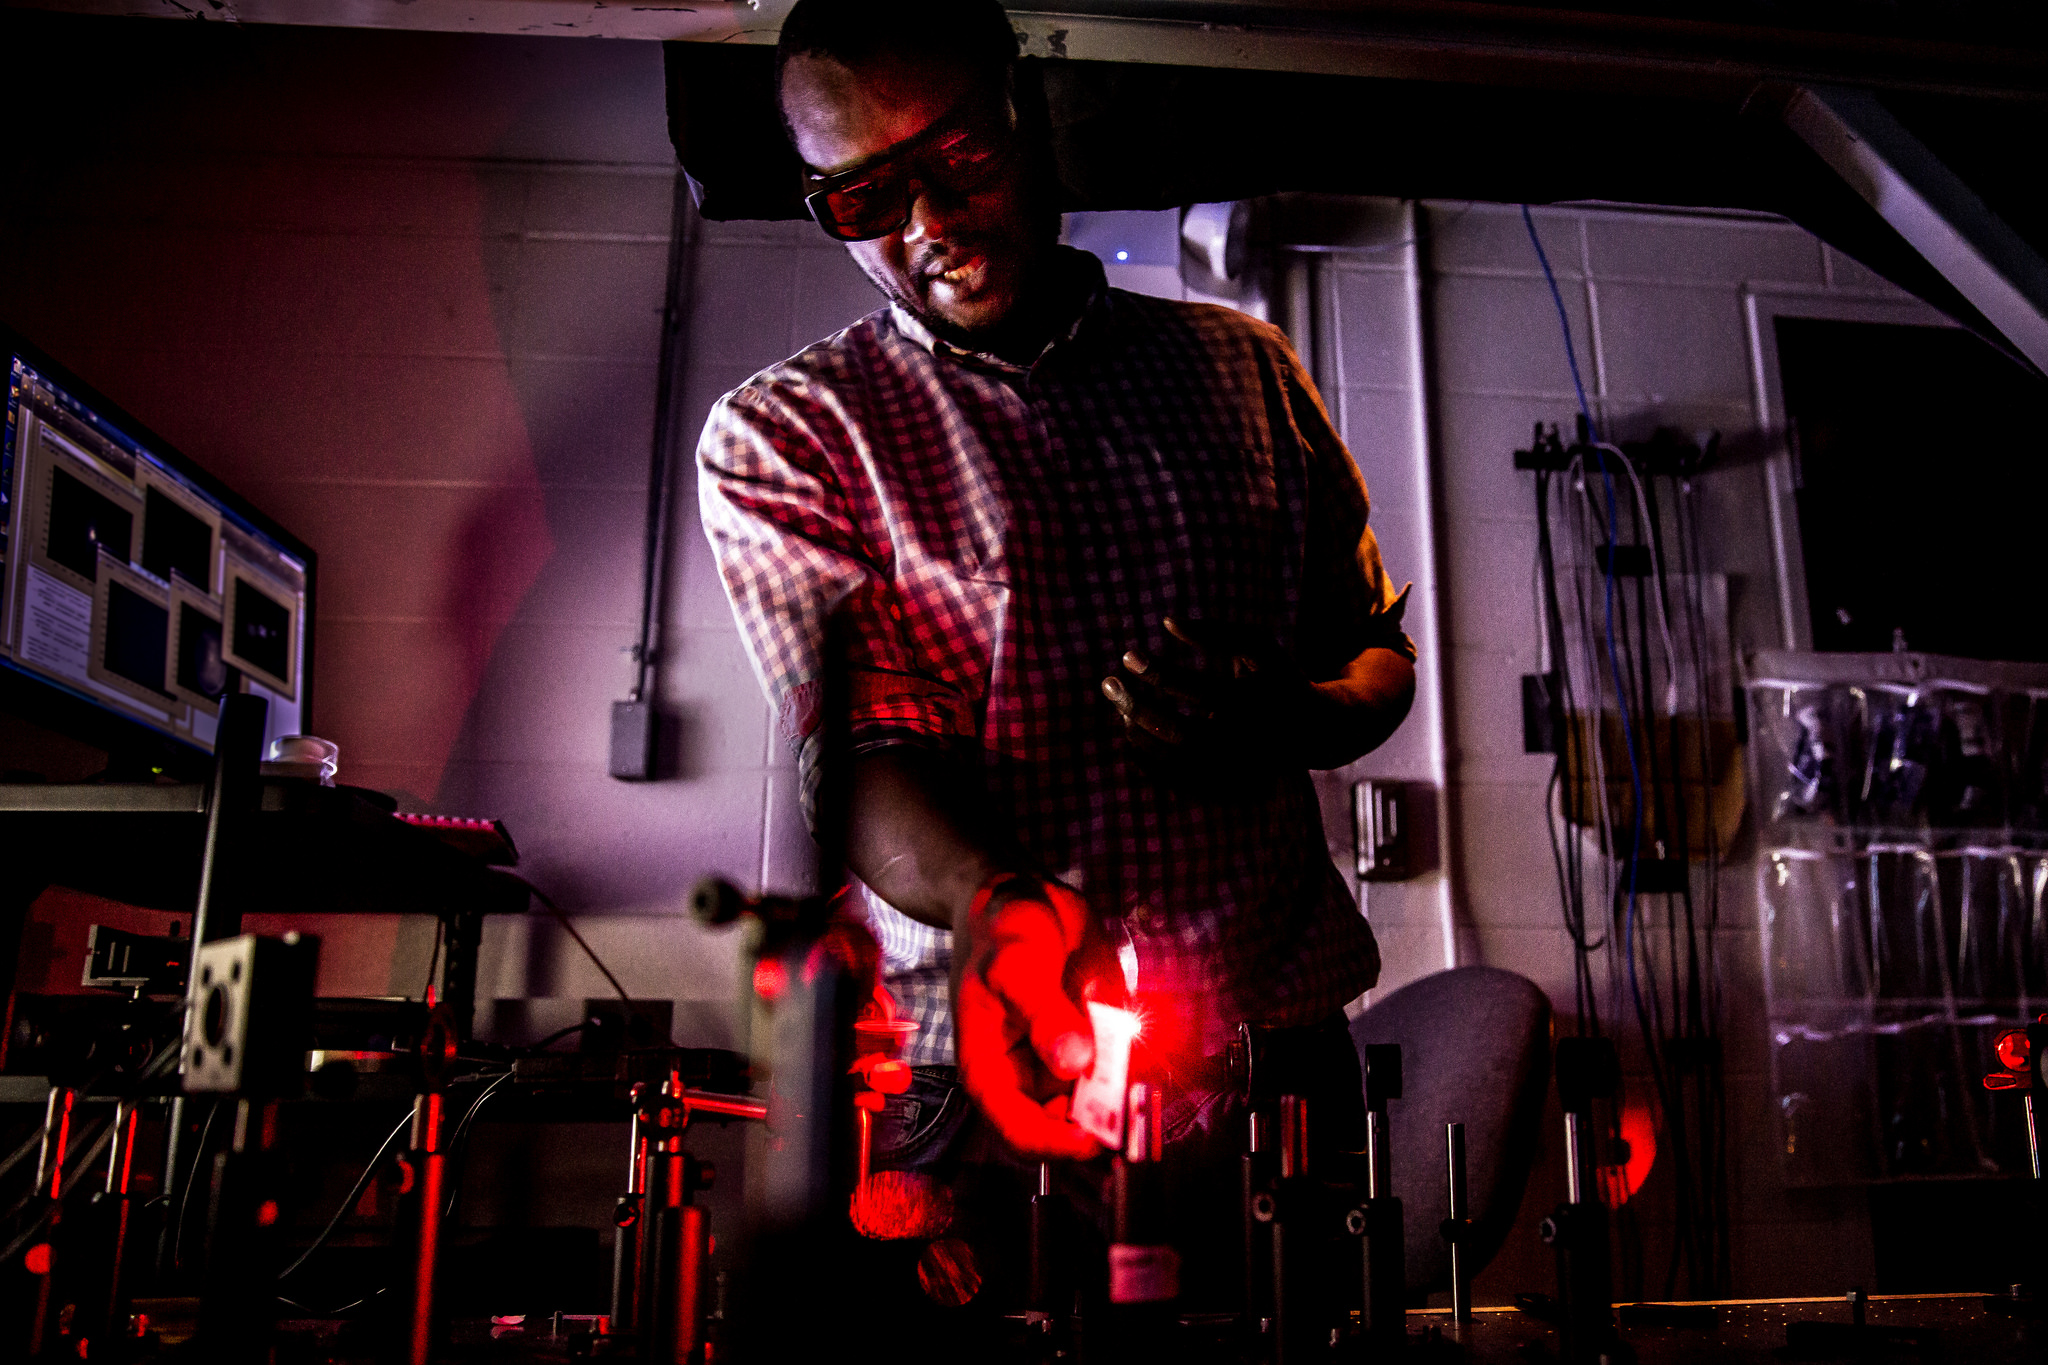 A photograph of EECS Researcher Moussa N'Gom demonstrating use of a laser to focus light through a platelet of yogurt.